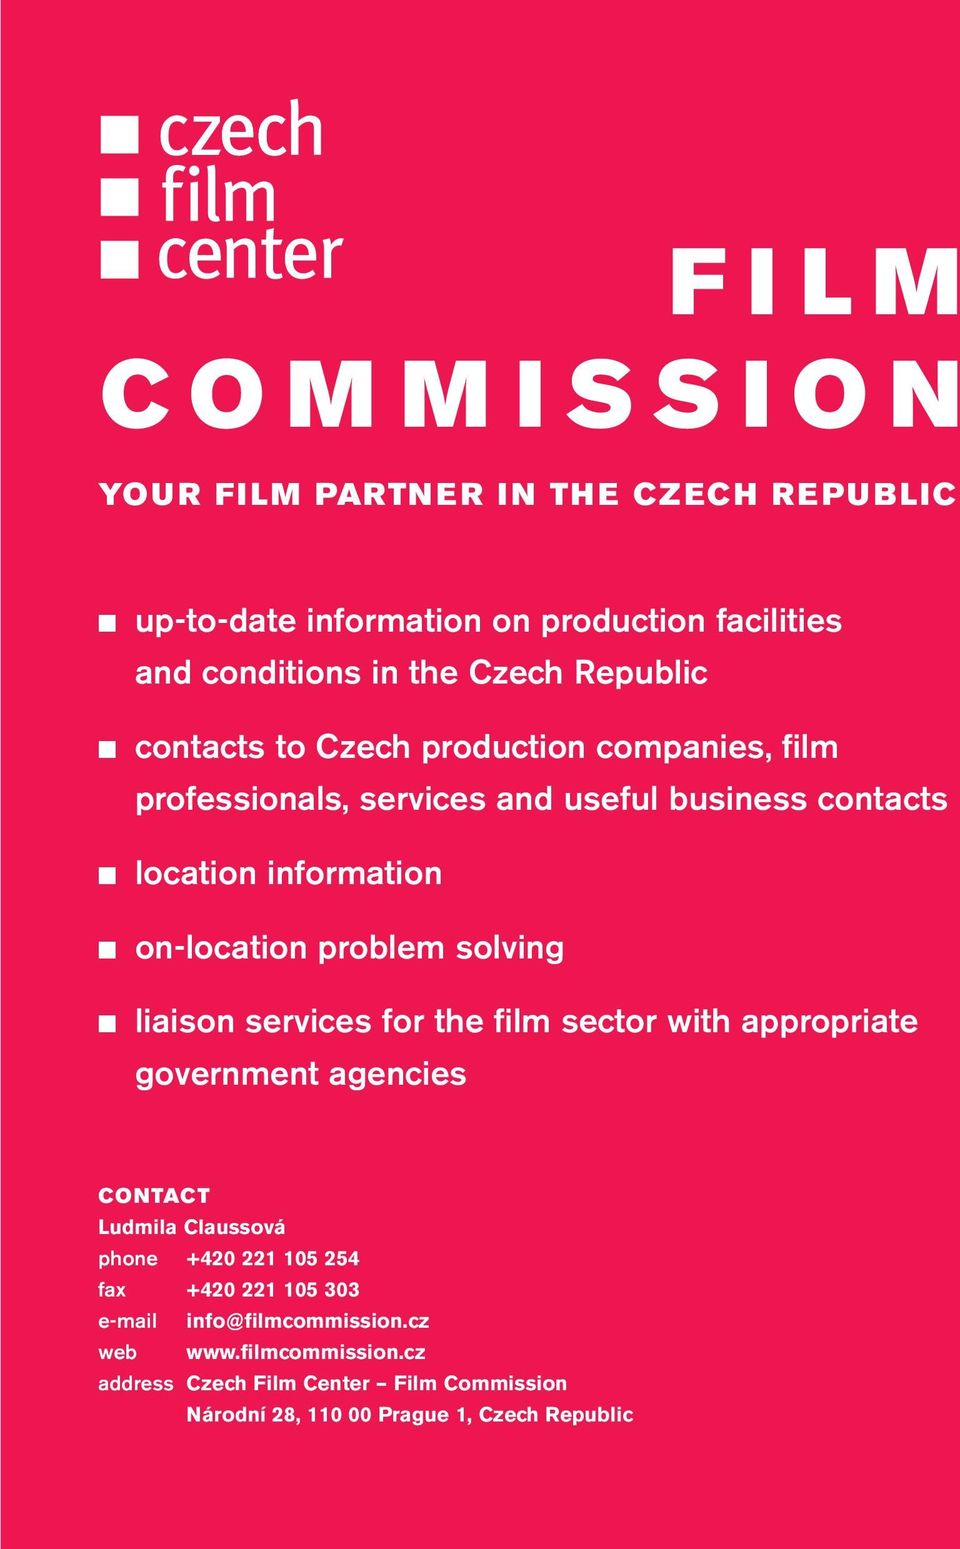 solving liaison services for the film sector with appropriate government agencies CONTACT Ludmila Claussová phone +420 221 105 254 fax +420 221